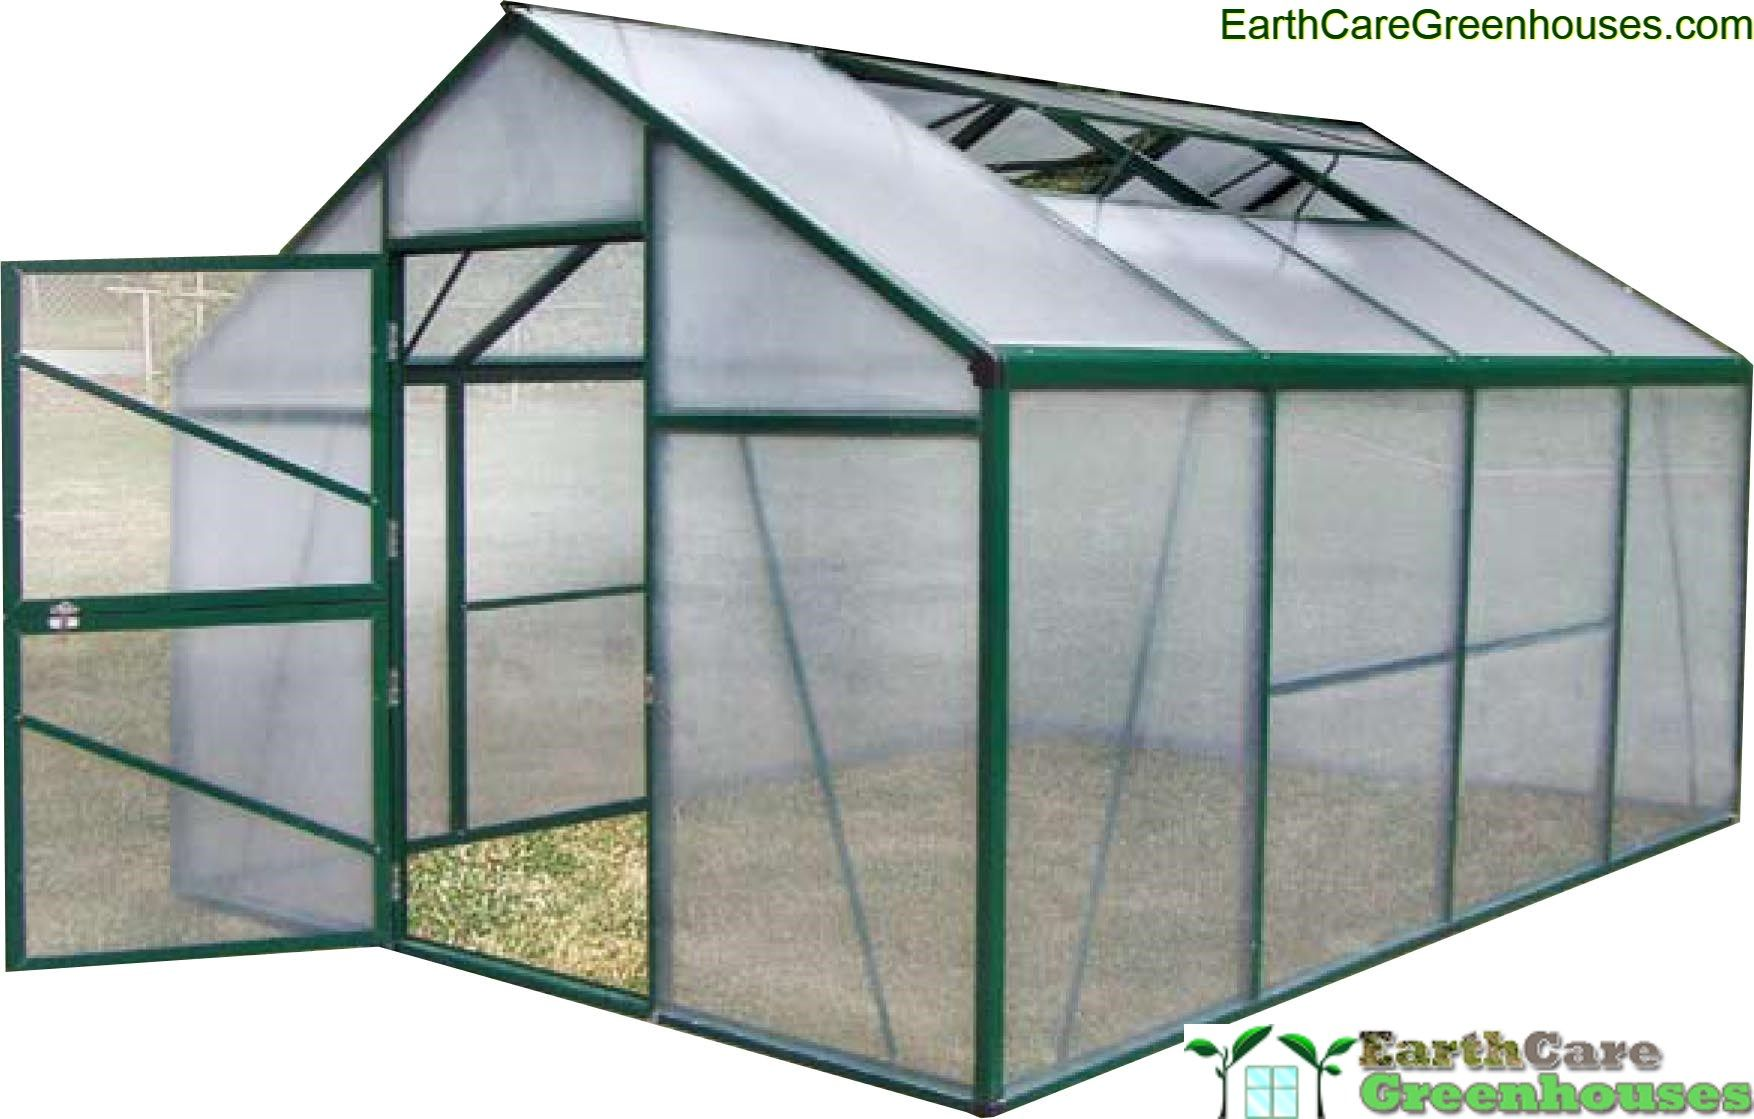 This Is A Photograph Of A Greenhouse Manufactured By Earthcare Greenhouses It S A Harvest Hobby Greenhouse Wit Hobby Greenhouse Greenhouse Greenhouse Supplies